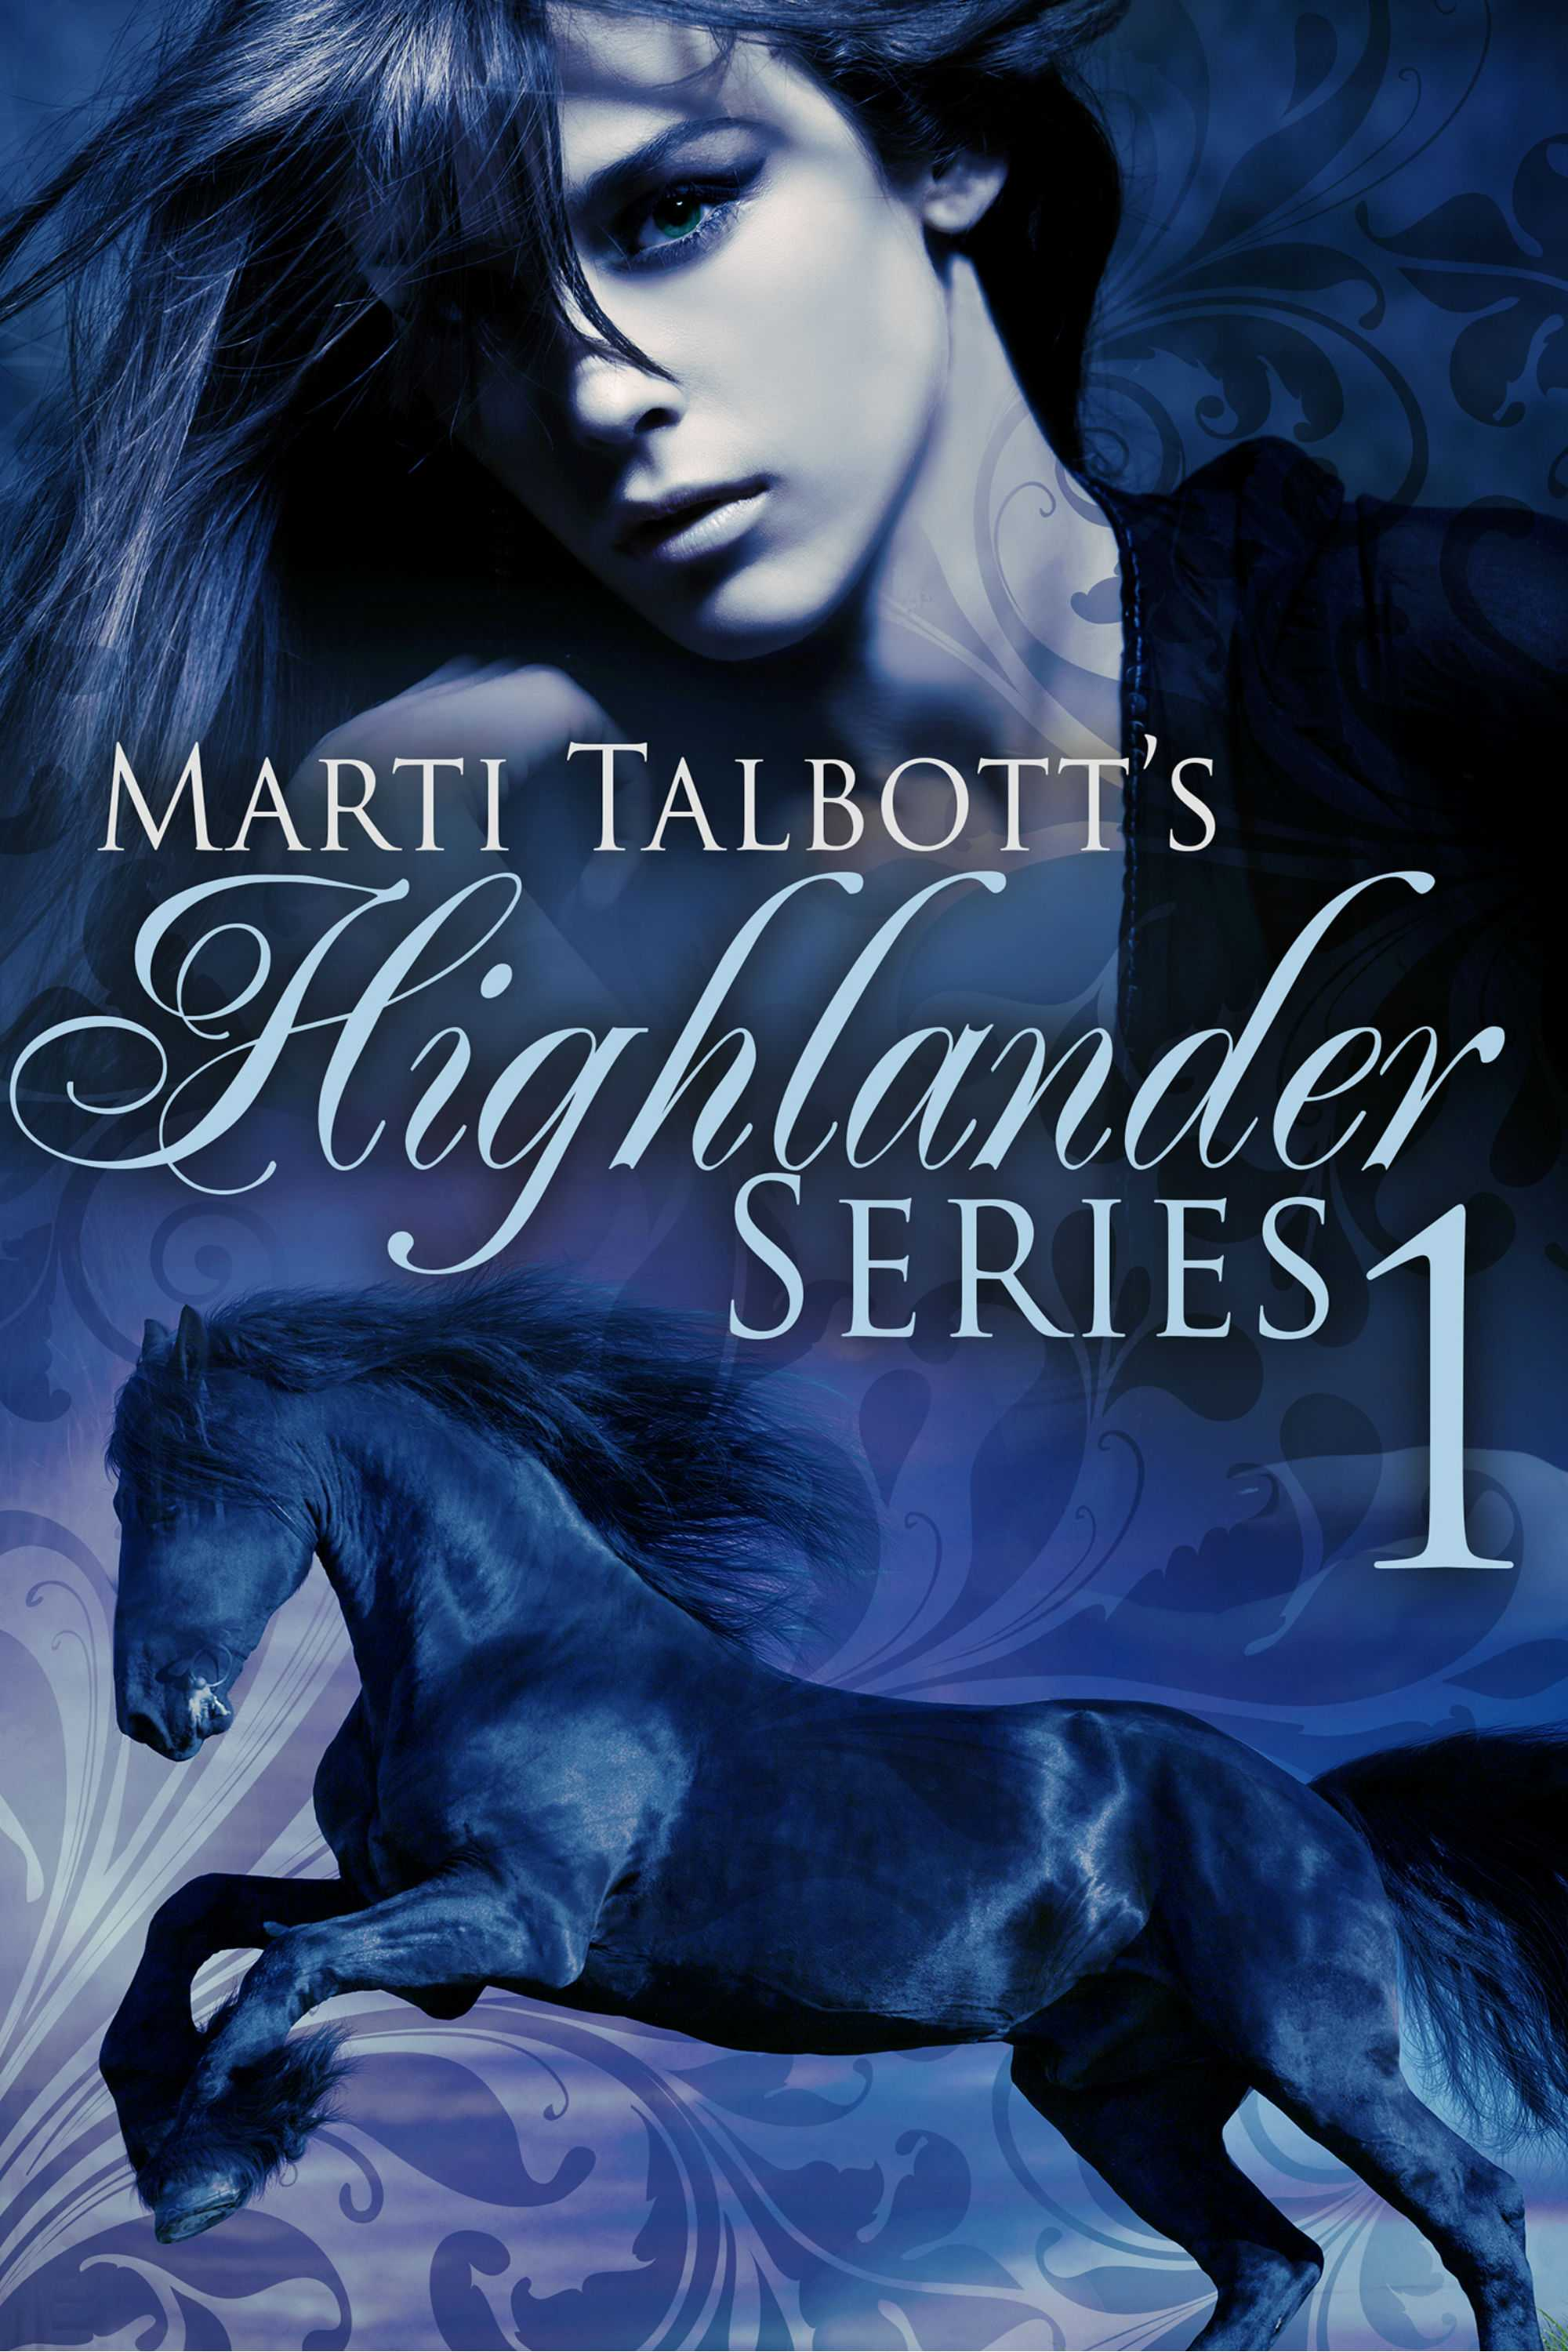 Read The Book Online Read Marti Talbott S Highlander Series Book 1 Online Free